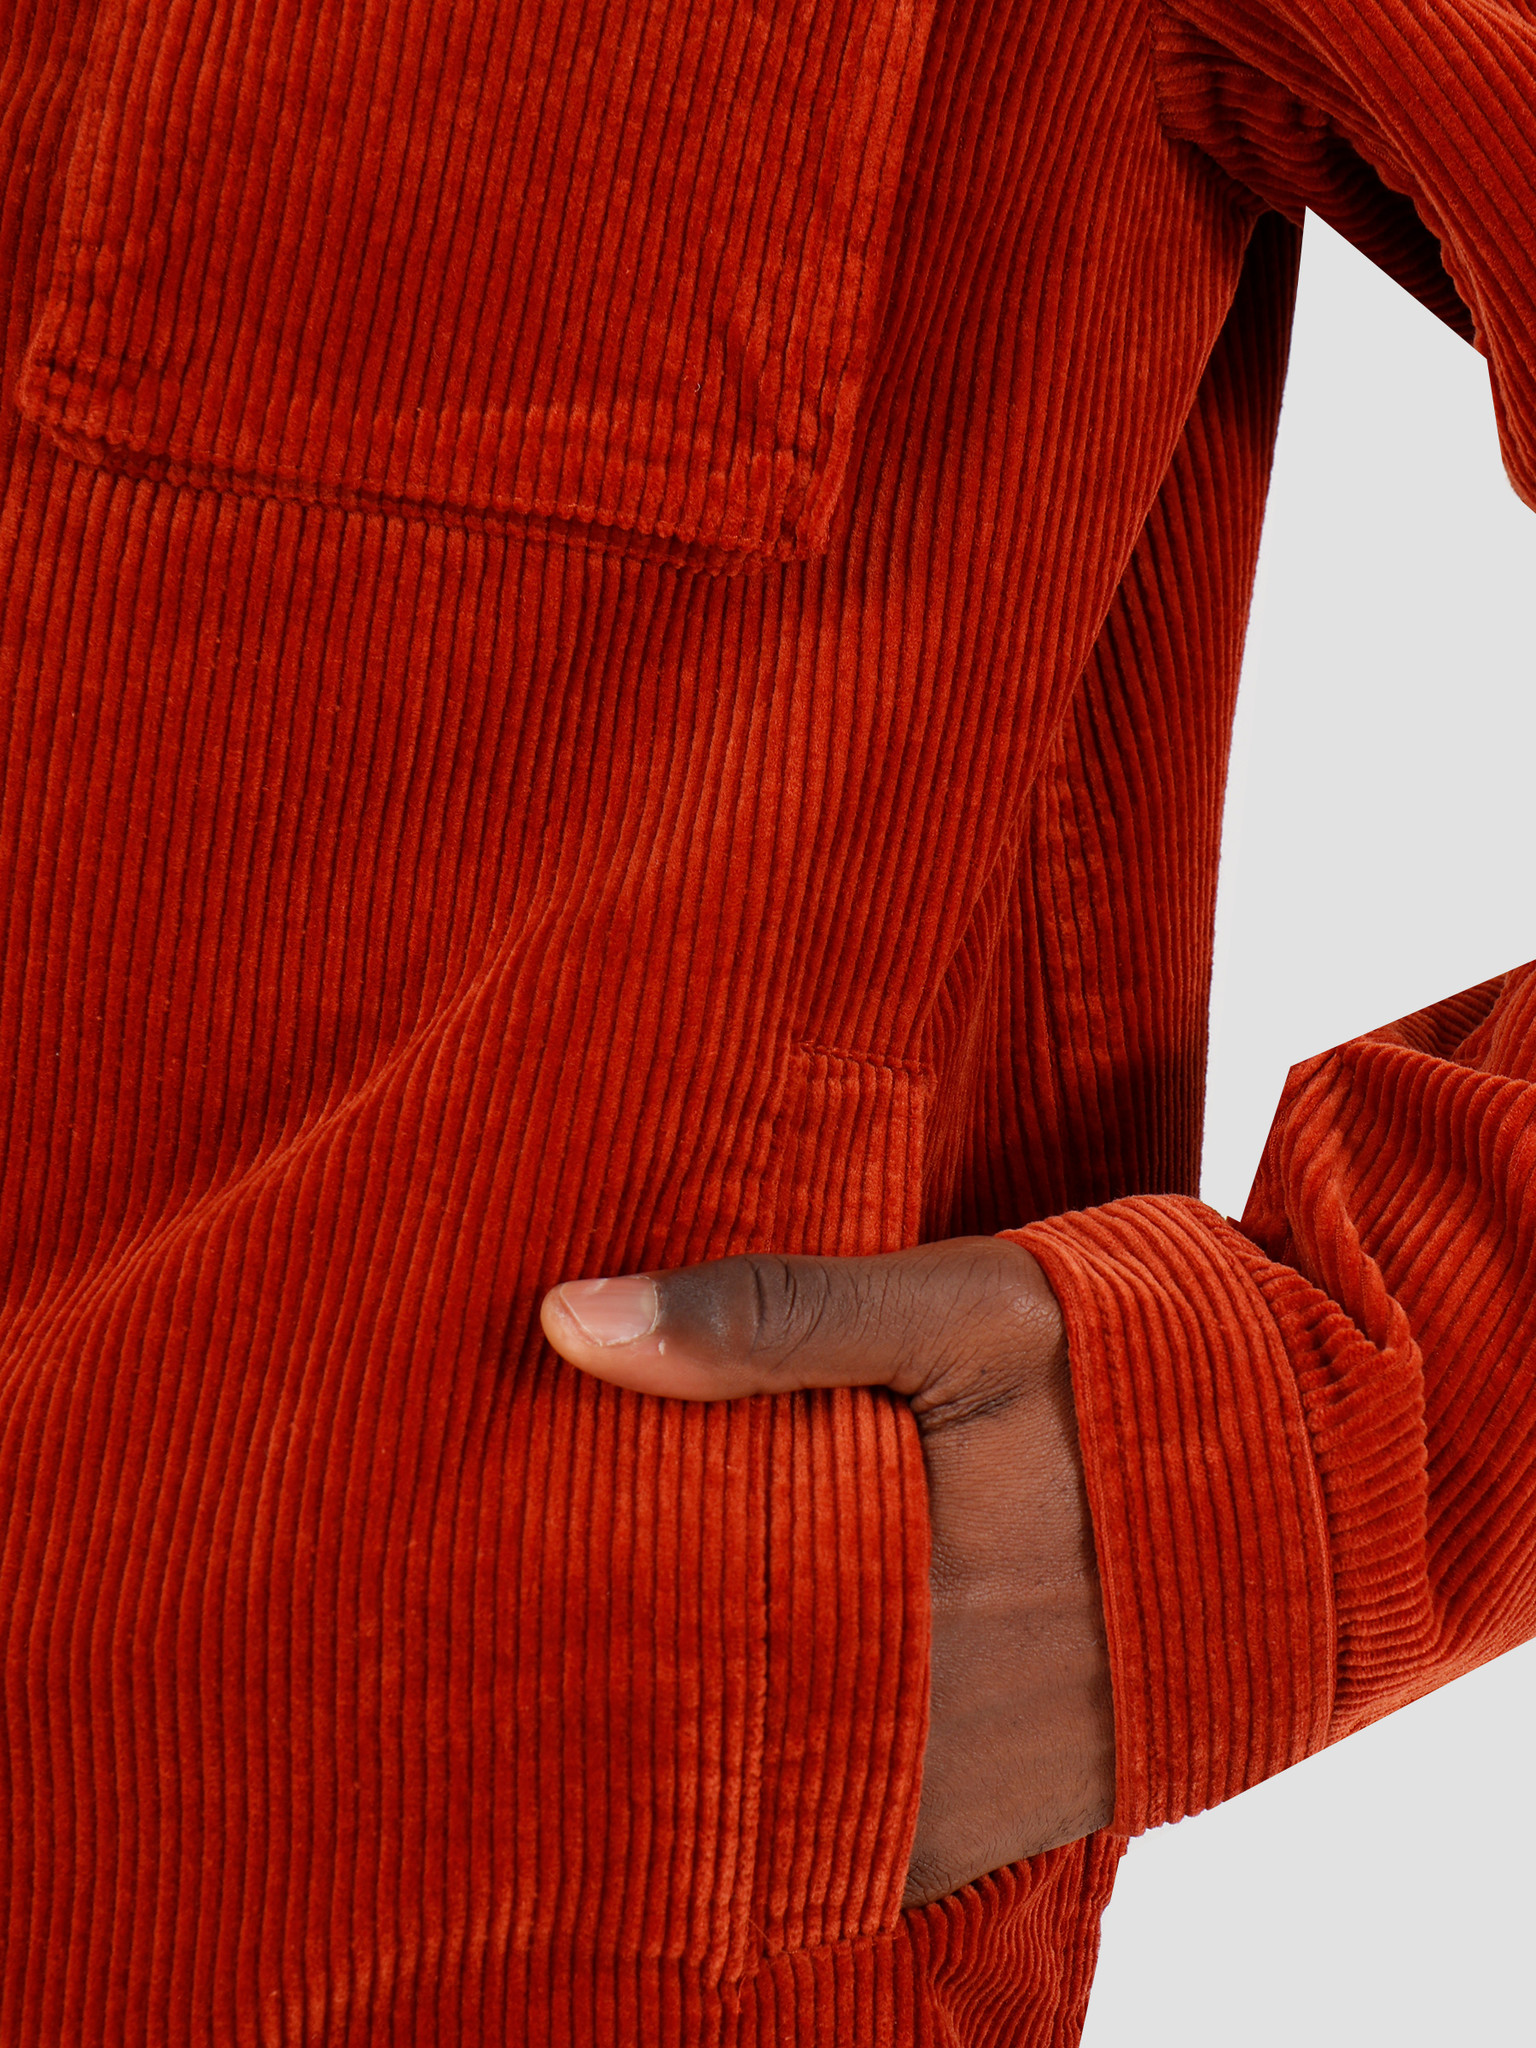 Daily Paper Daily Paper Cargo Jacket Corduroy Arabian Spice Orange 19H1OU01-03